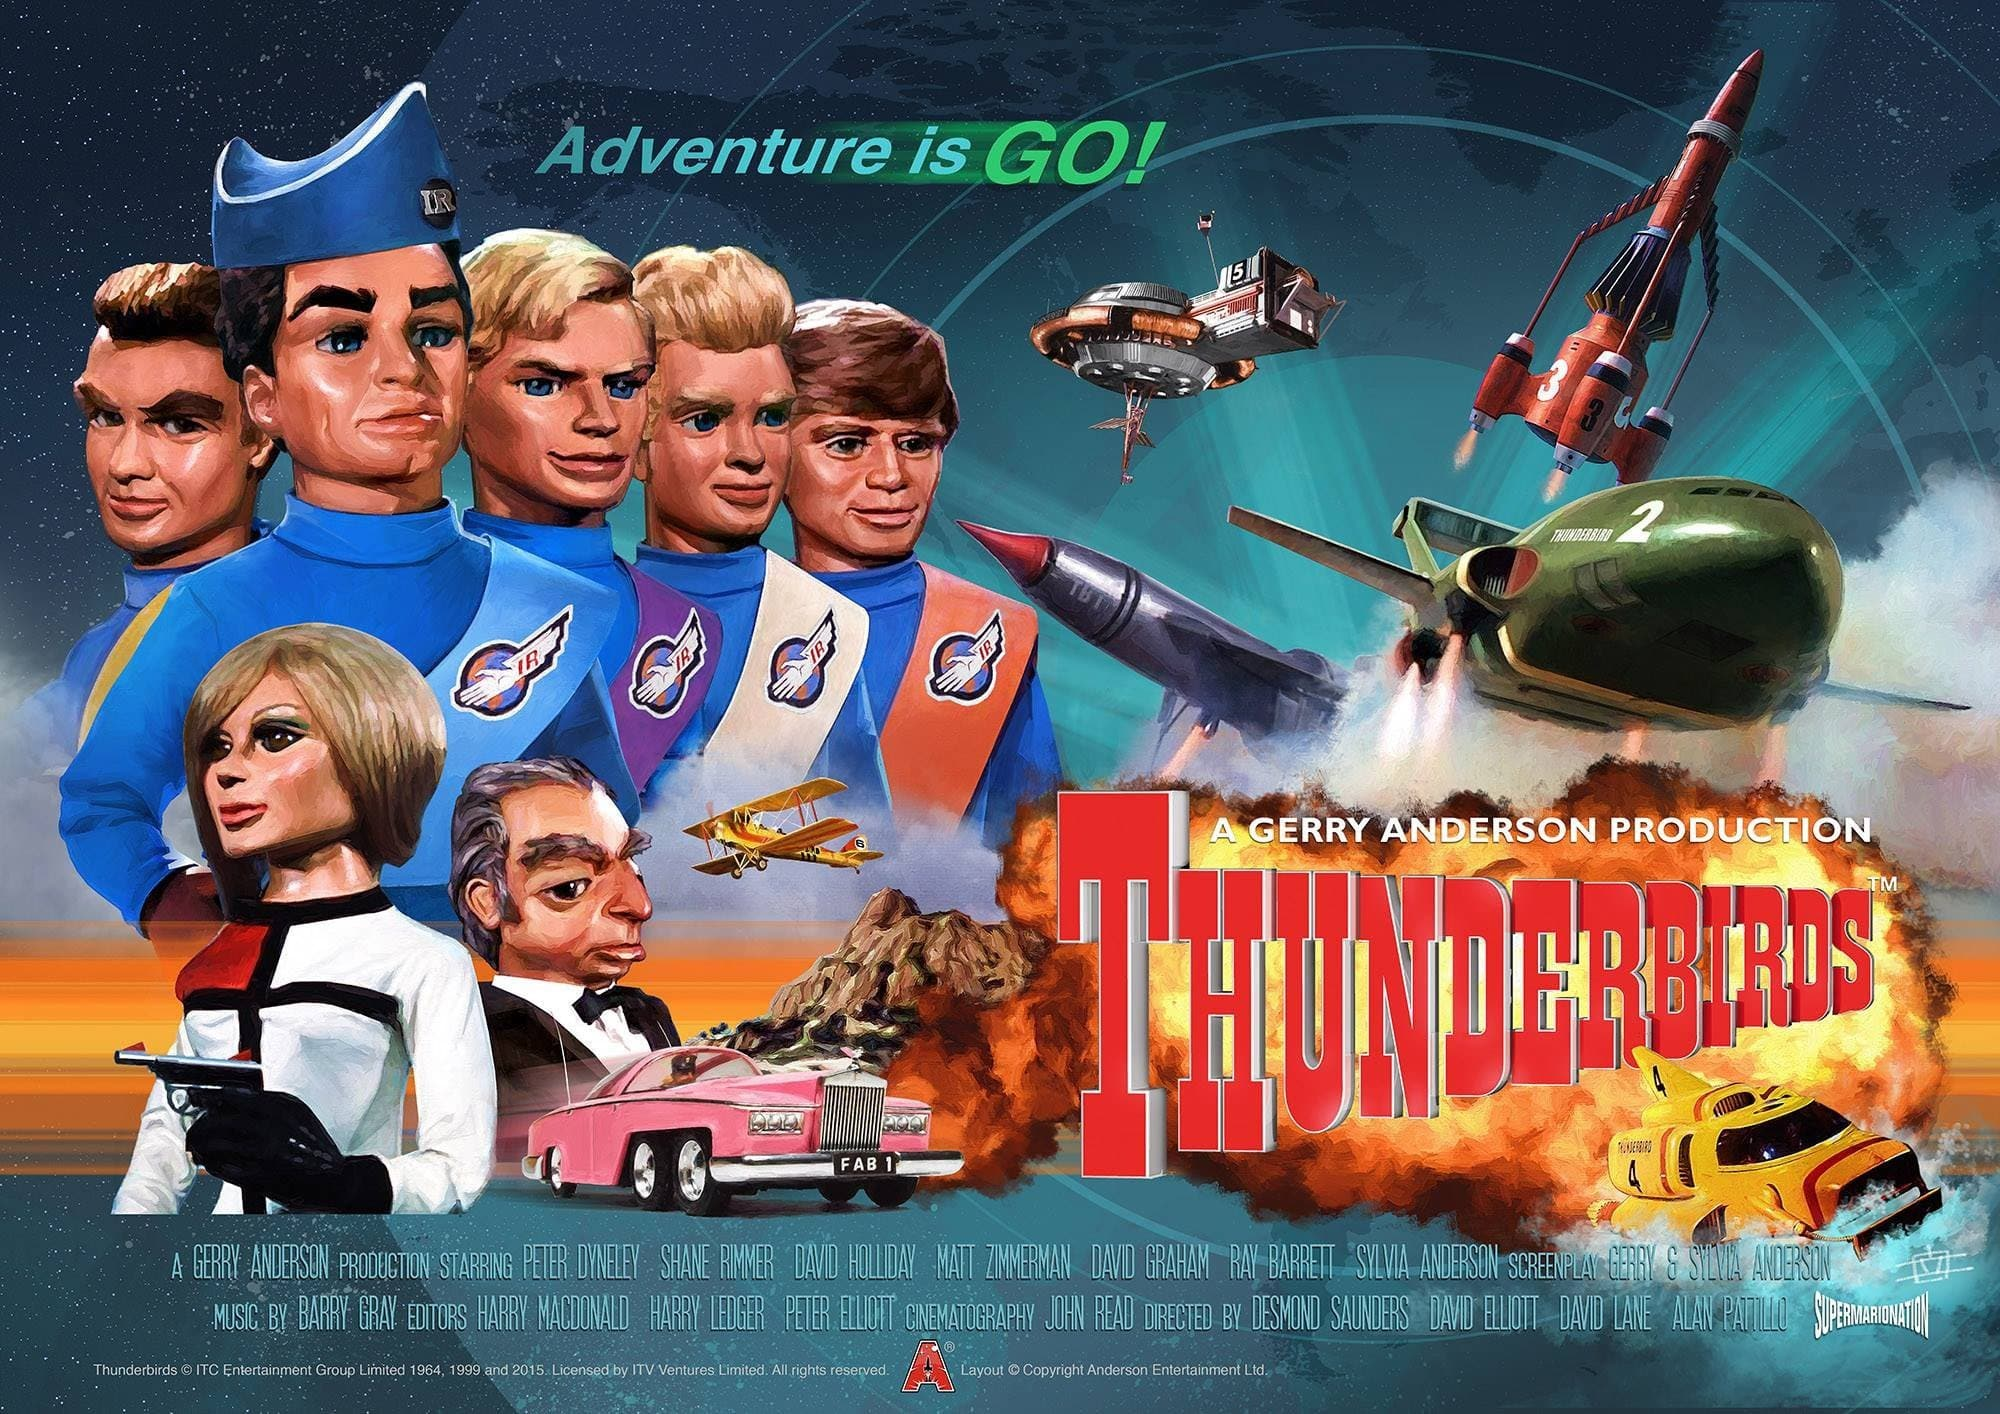 Thunderbird 6 Cartoon Characters : Official thunderbirds th anniversary poster